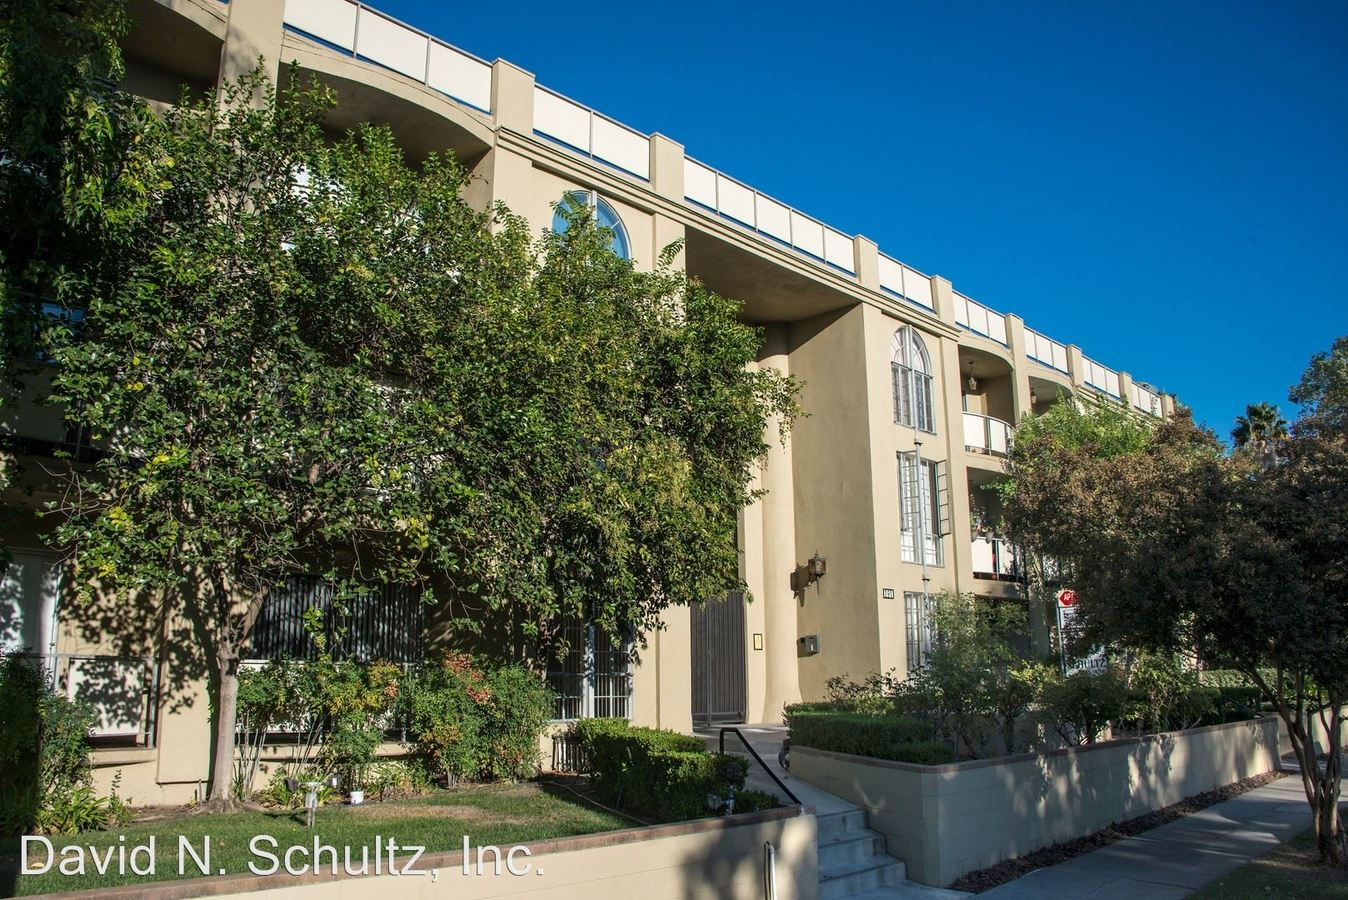 2 Bedrooms 1 Bathroom Apartment for rent at 191 S. Sierra Madre Blvd. in Pasadena, CA